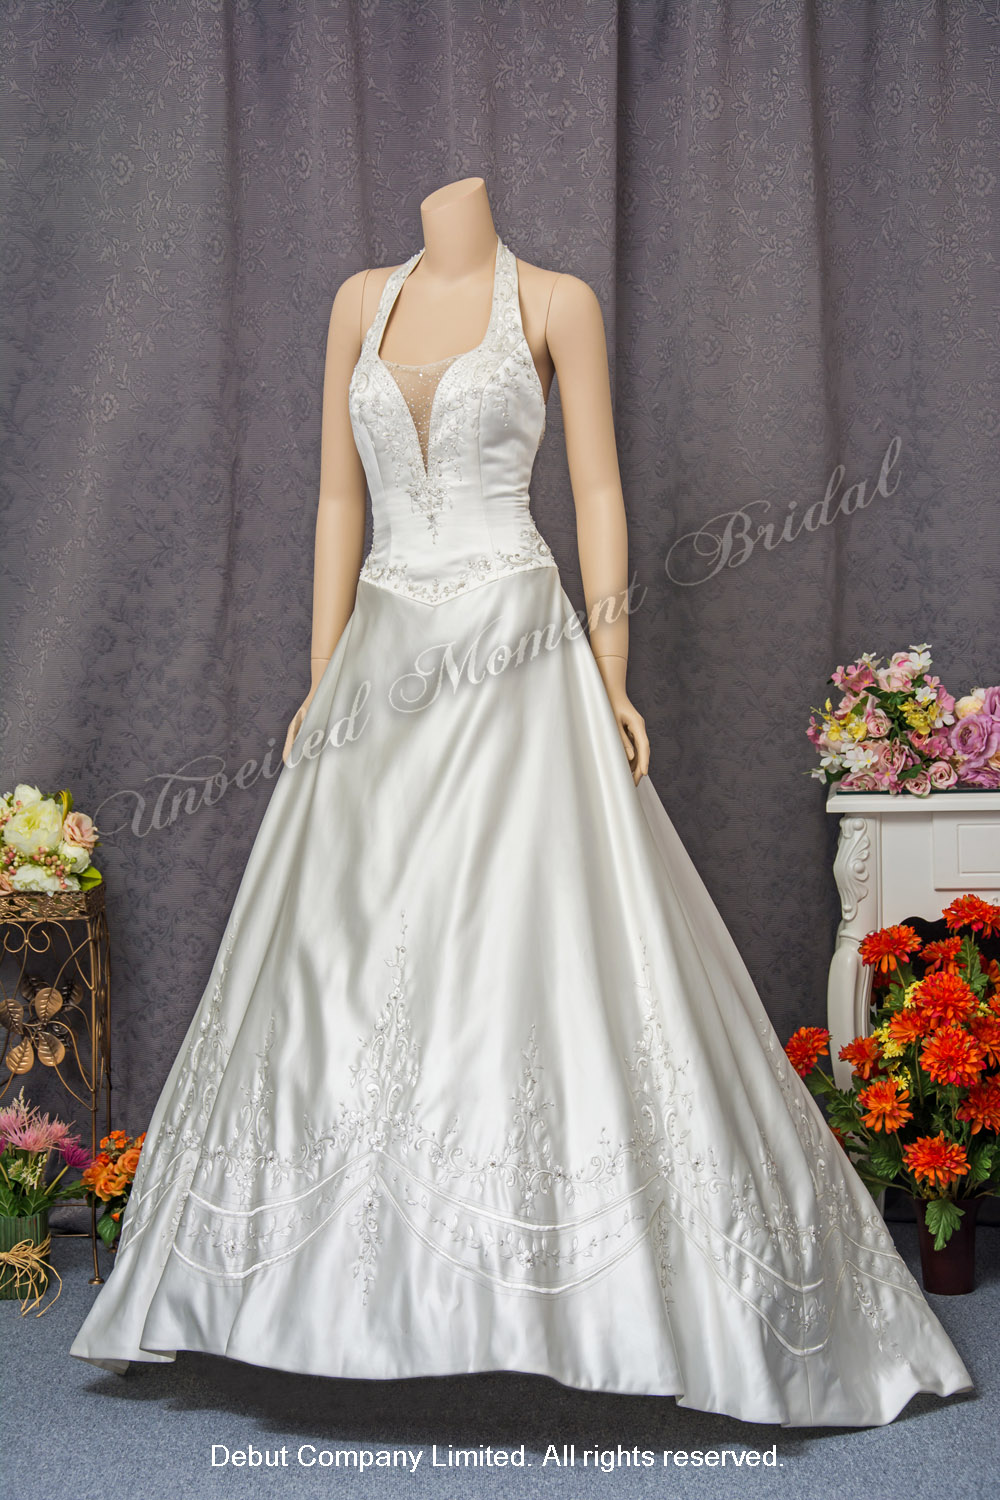 Deep-V halter neckline wedding gown with beaded embroideries and a brush train. 掛頸肩帶, 秀視Deep-V, 釘珠刺繡, A-line婚紗